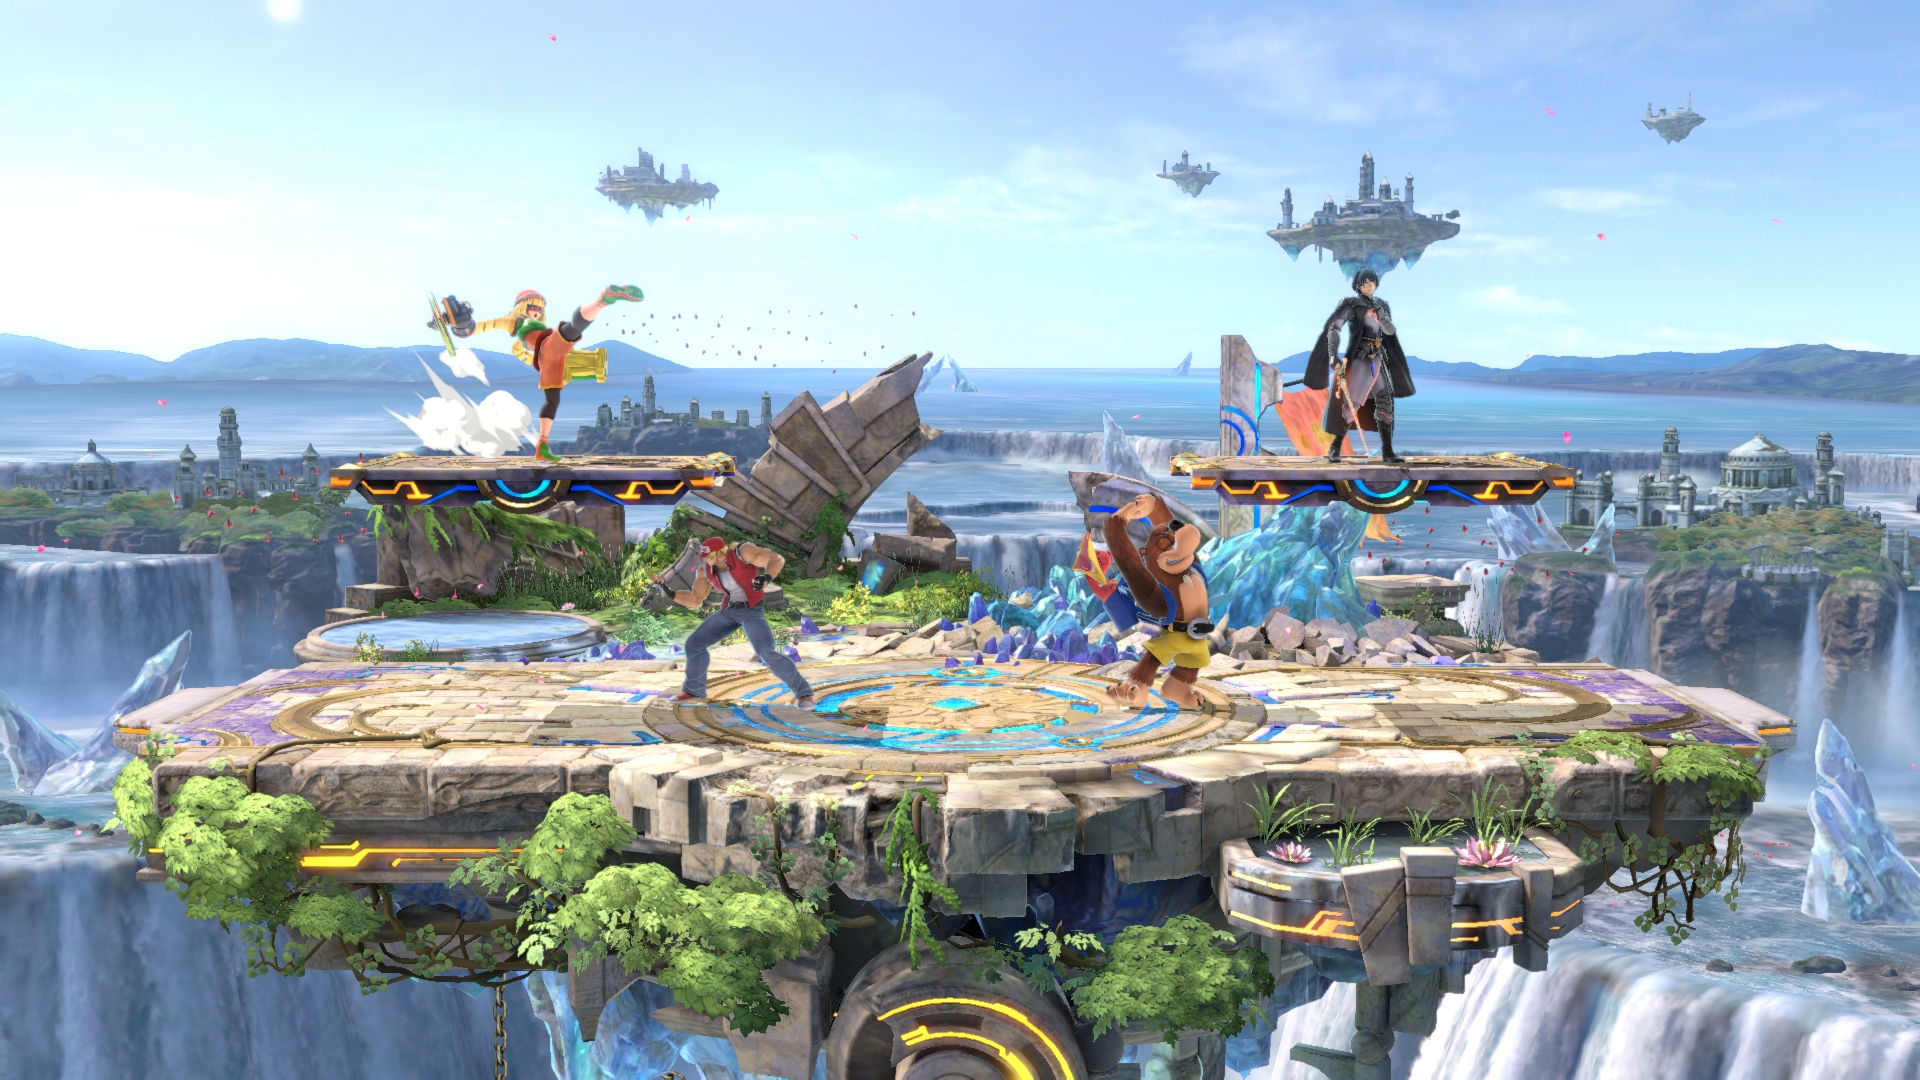 New Super Smash Bros Ultimate Update 8 1 Released Adds Small Battlefield Stage And Slightly Improves Connectivity